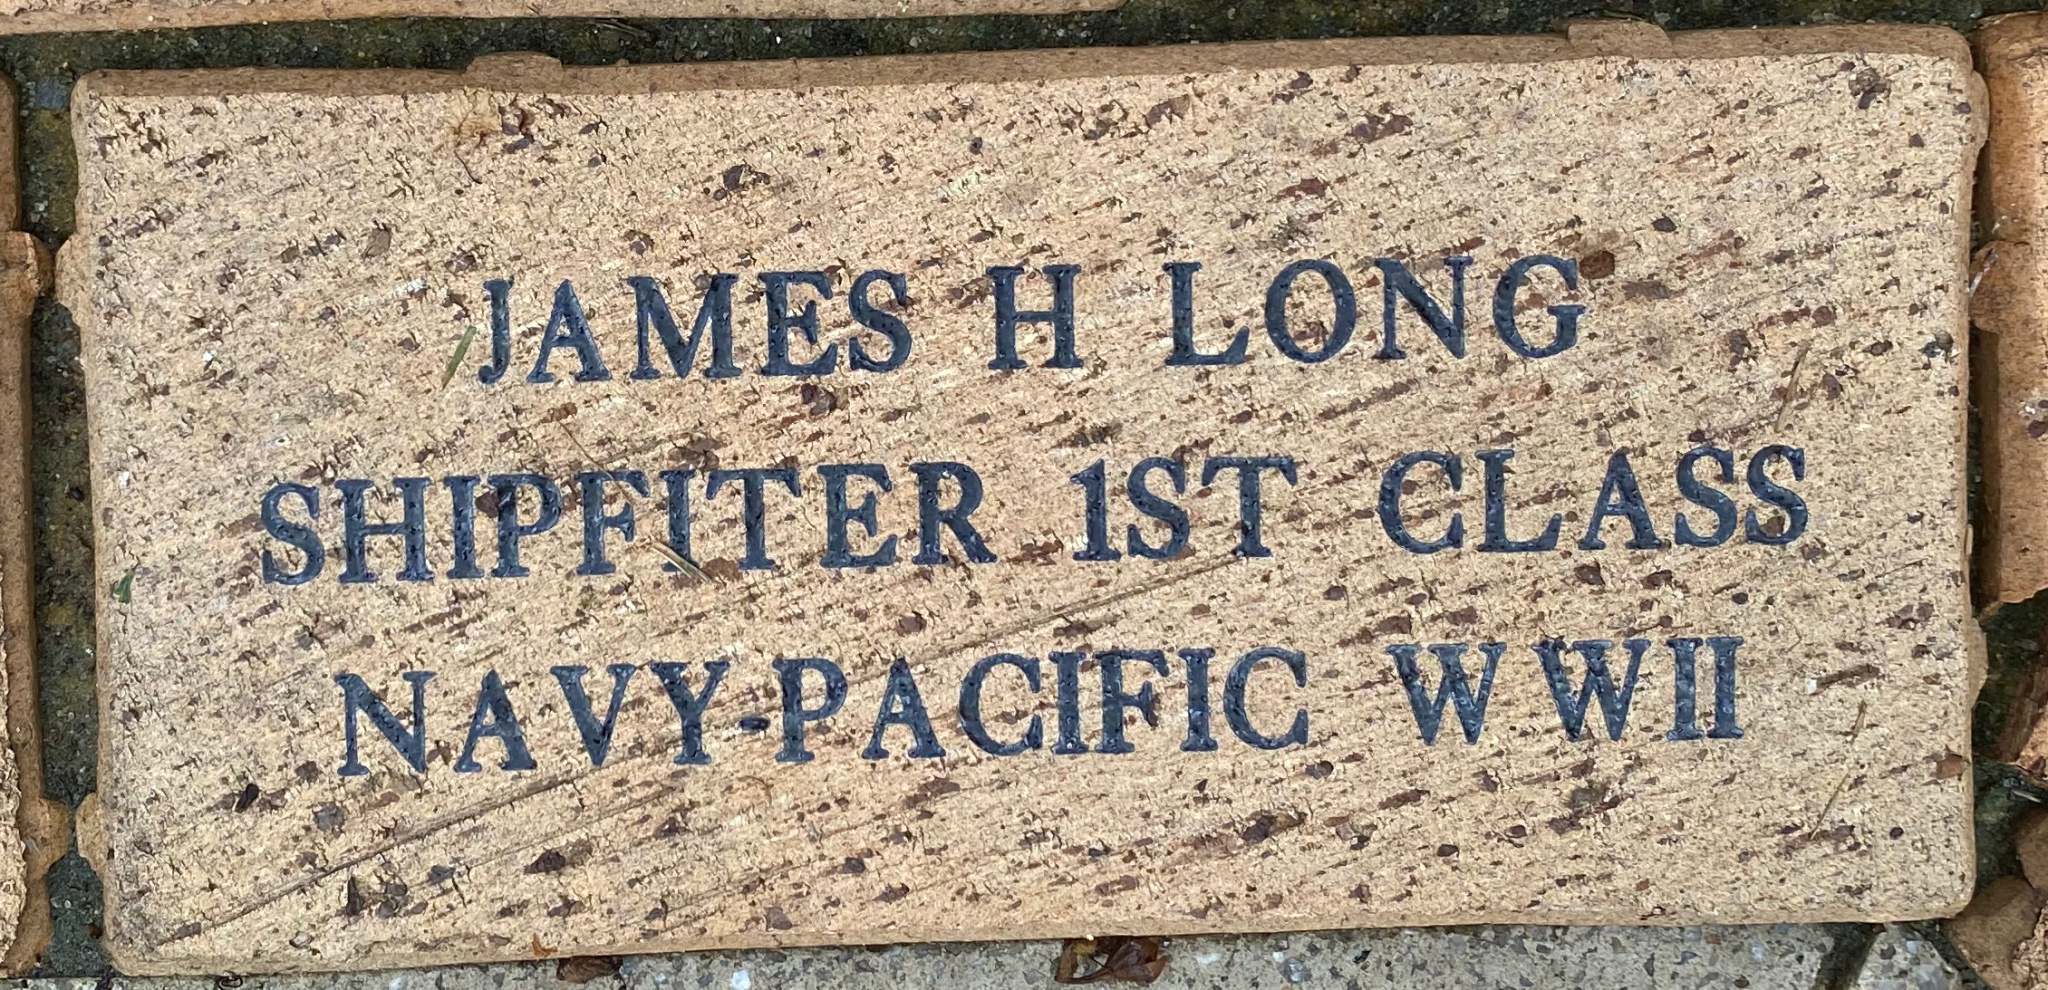 JAMES H LONG SHIPFITER 1ST CLASS NAVY PACIFIC WWII